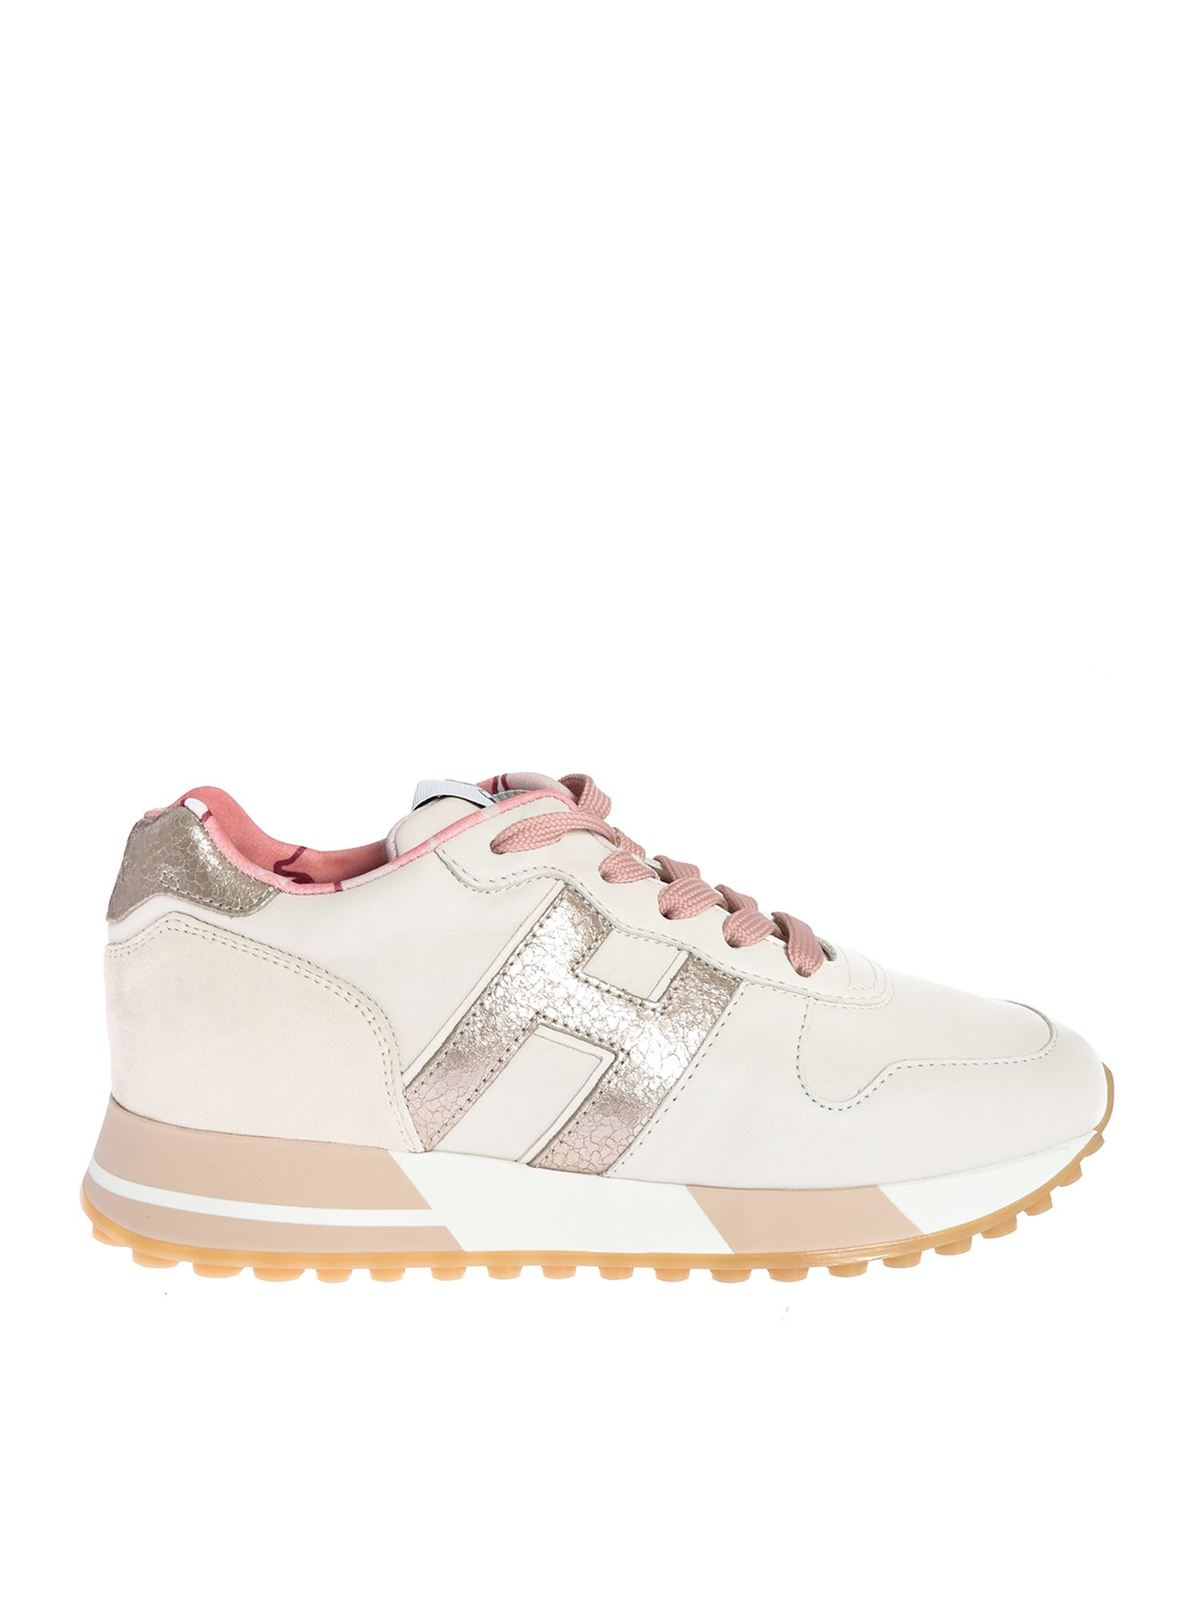 Hogan H383 SNEAKERS IN CREAM AND PINK